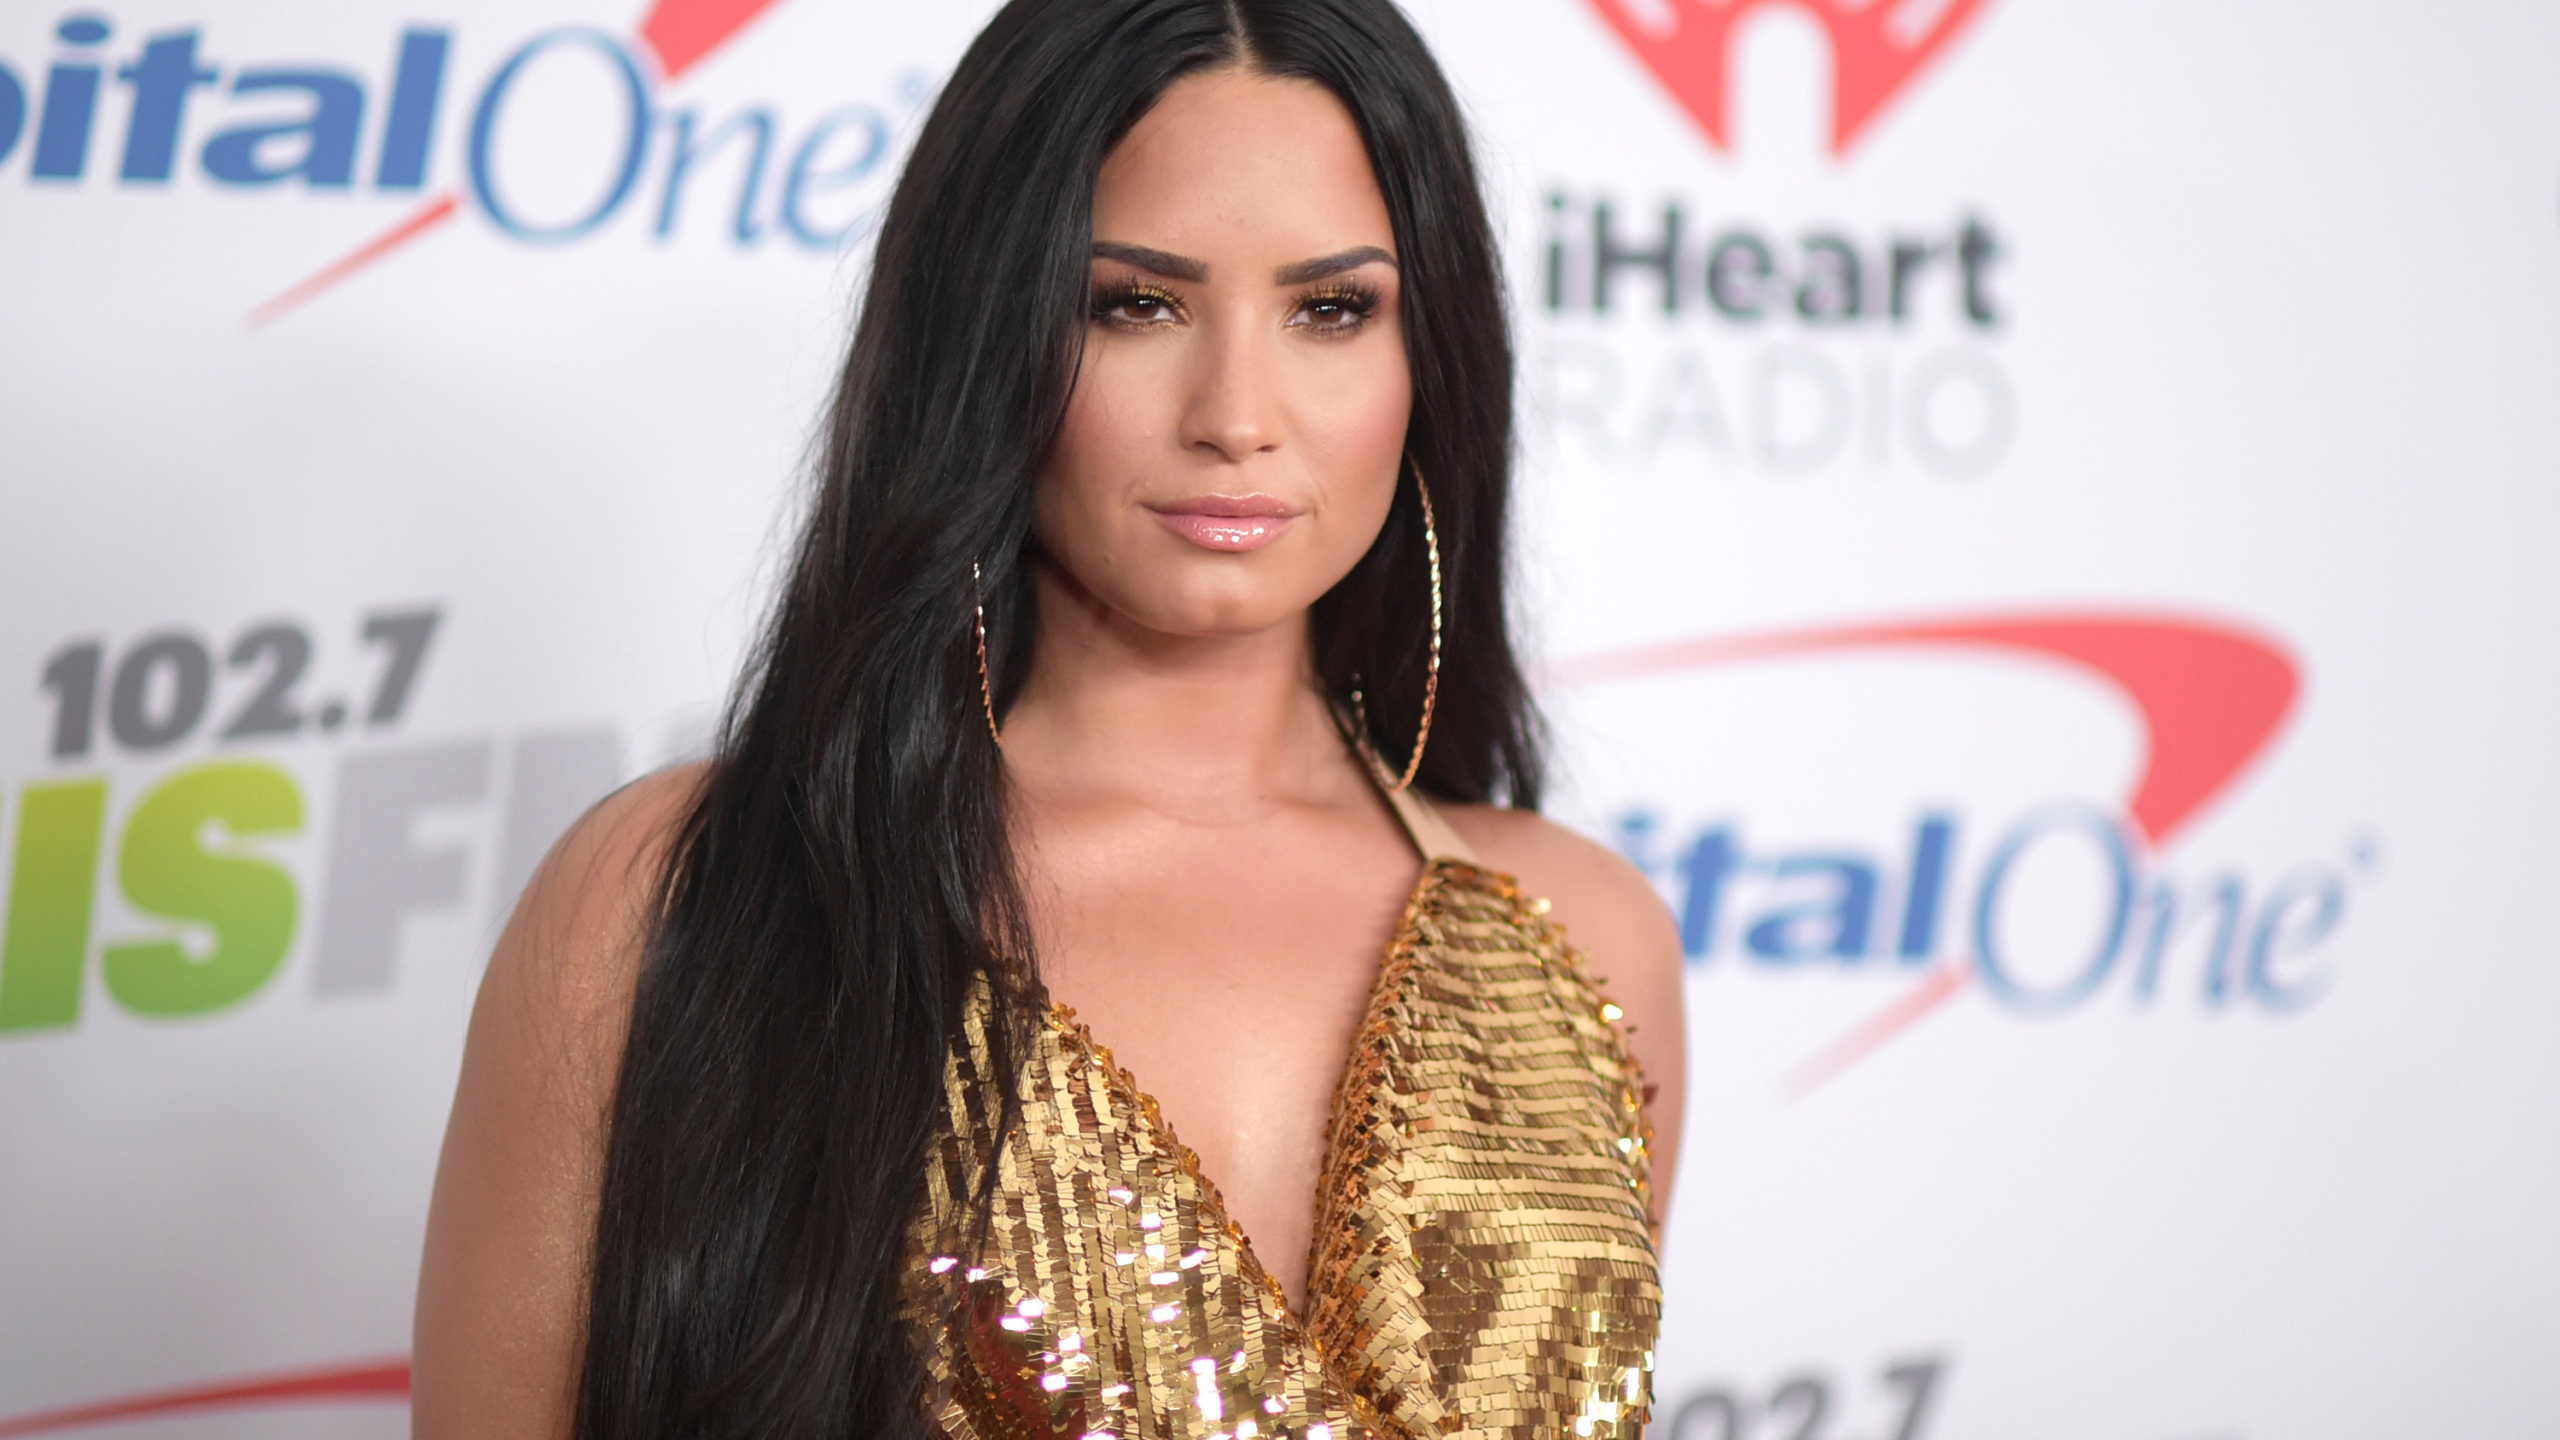 People_Demi_Lovato_16965-159532.jpg69327149